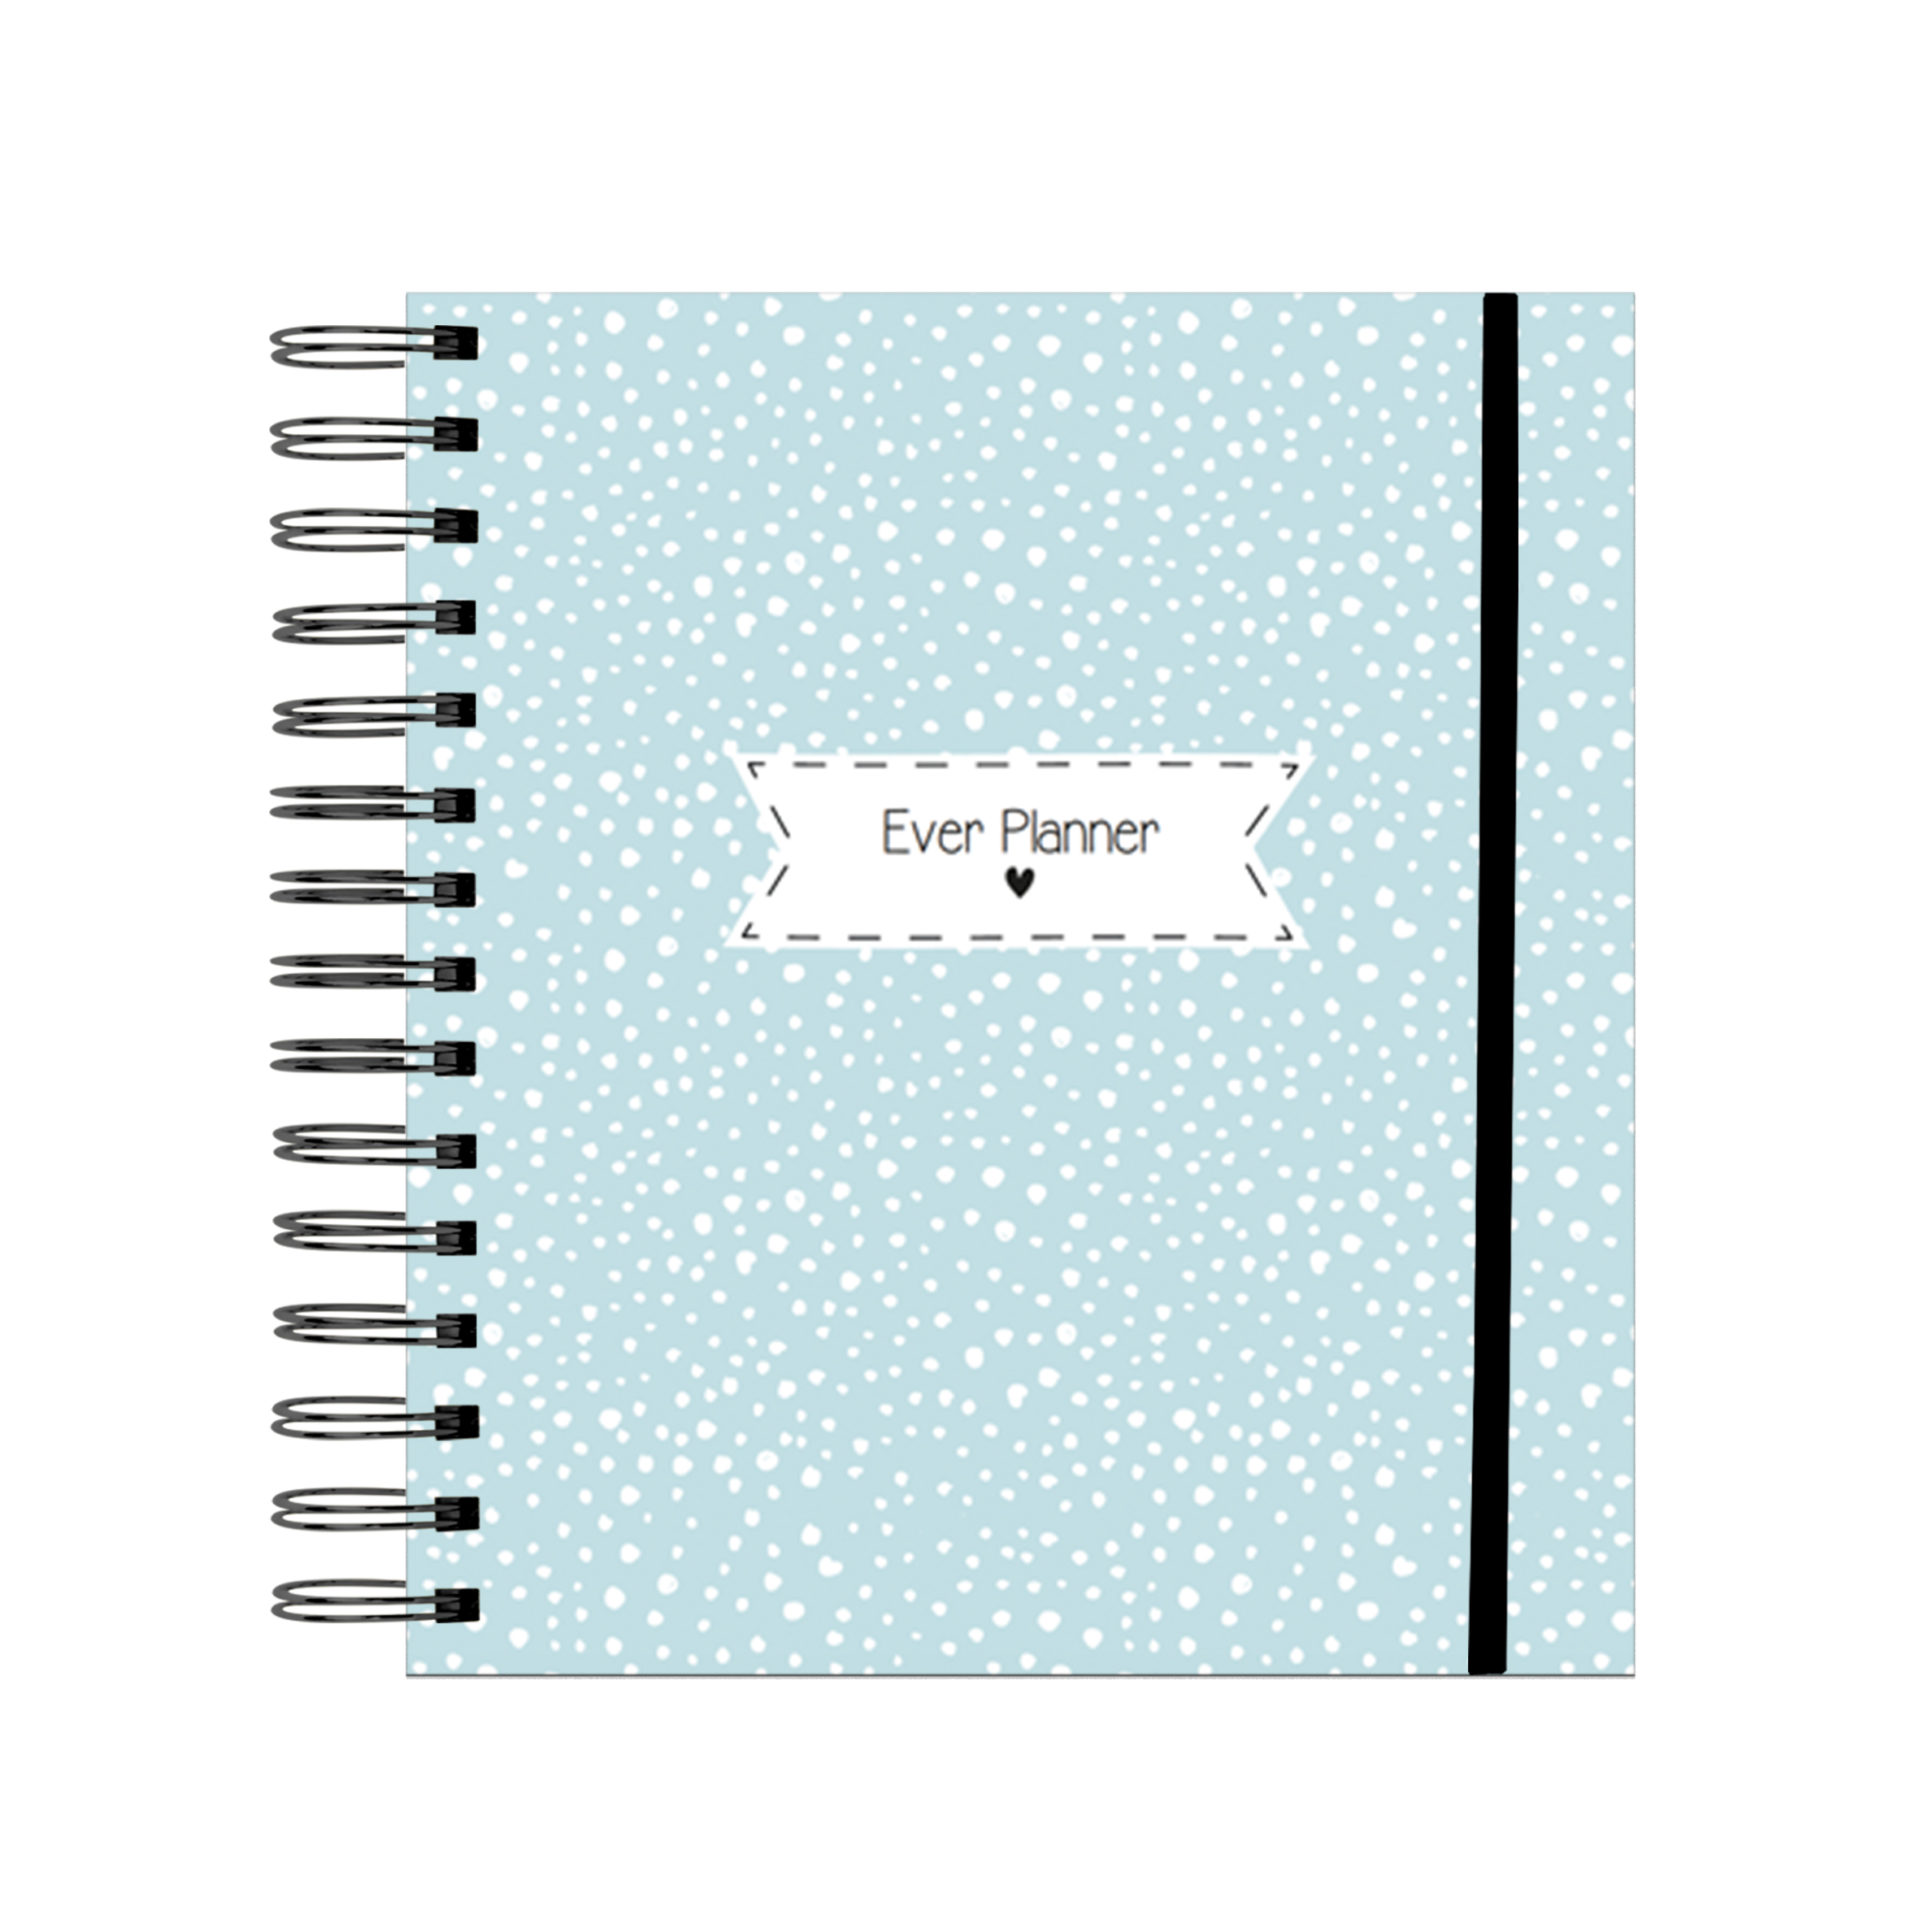 Ever Planner Permanente - Evertop